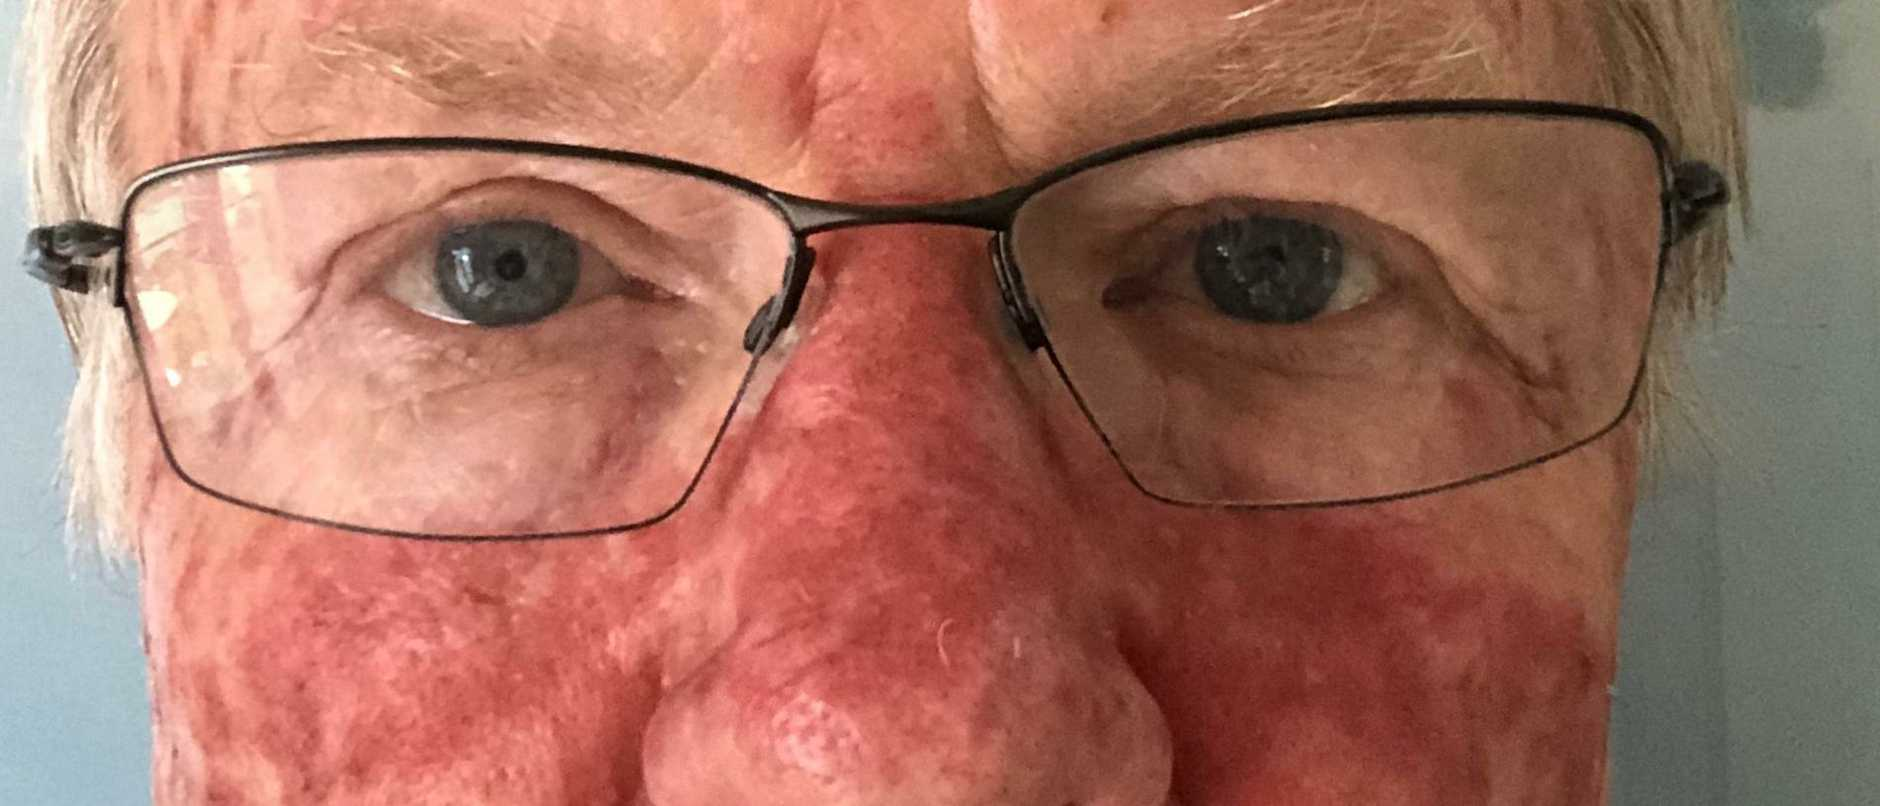 Peter Beattie says people will see his 'ugly face'